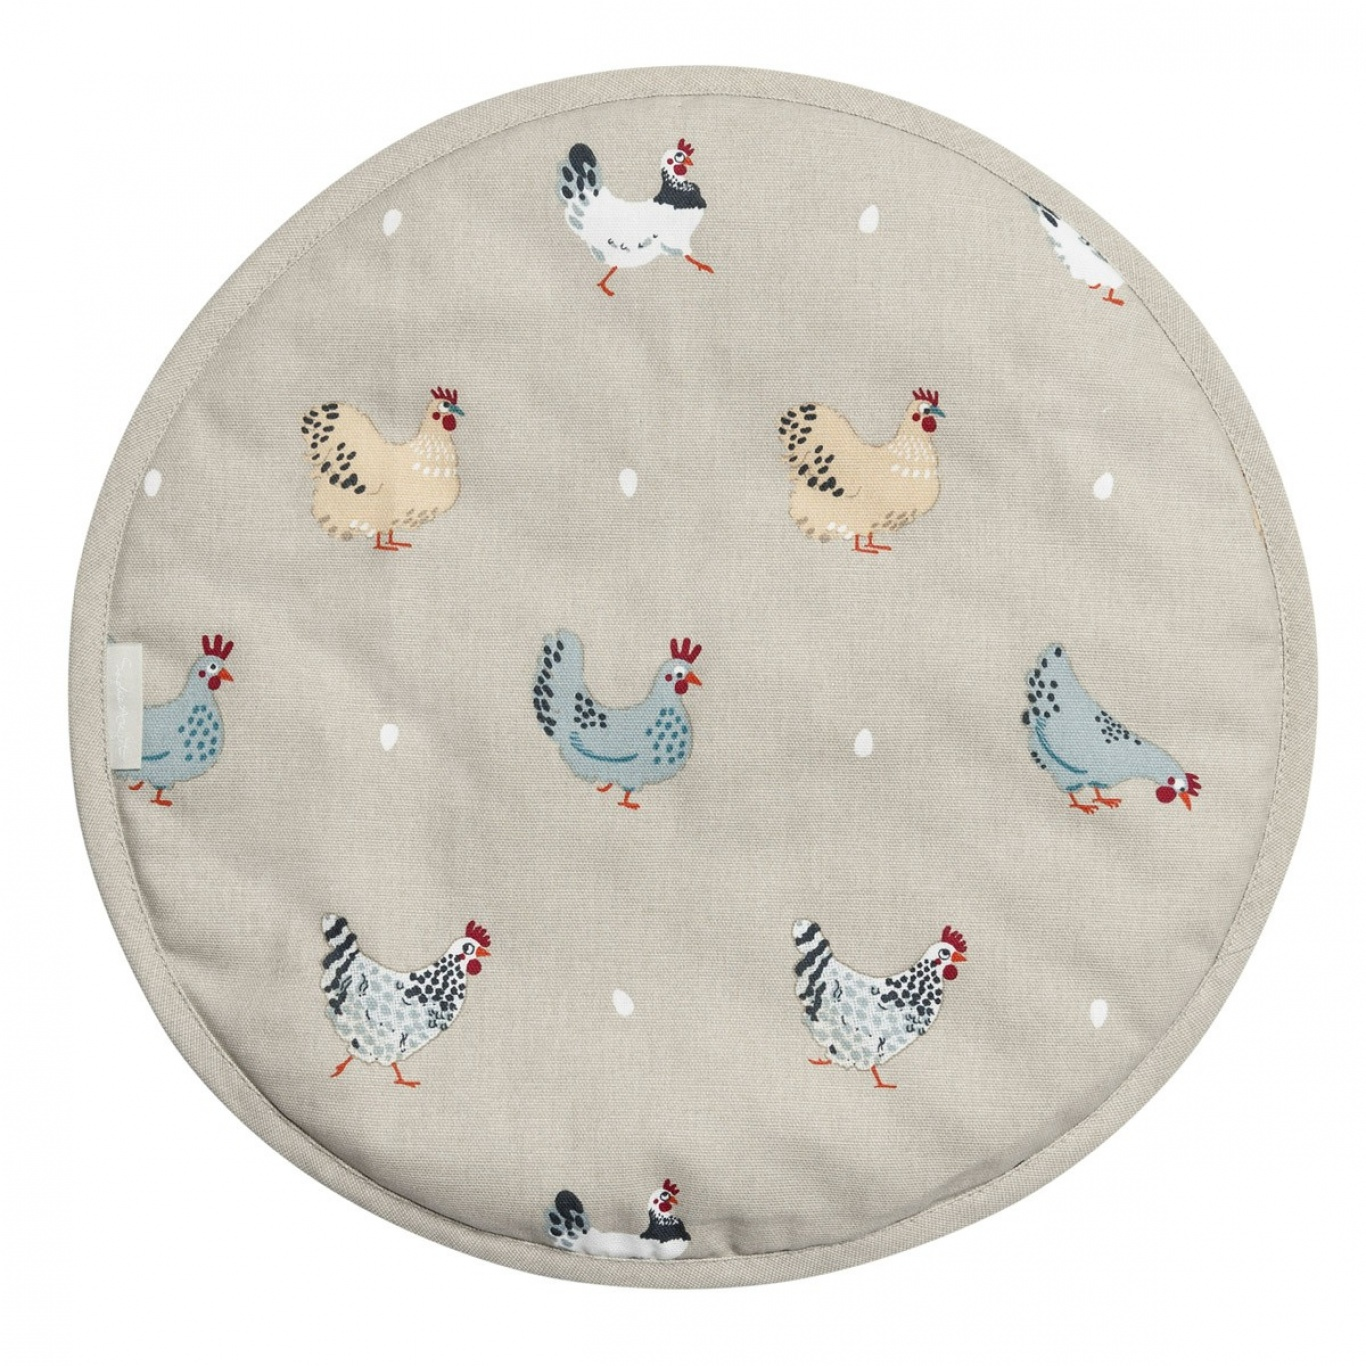 Image of Sophie Allport Lay a Little Egg Round Hob Cover